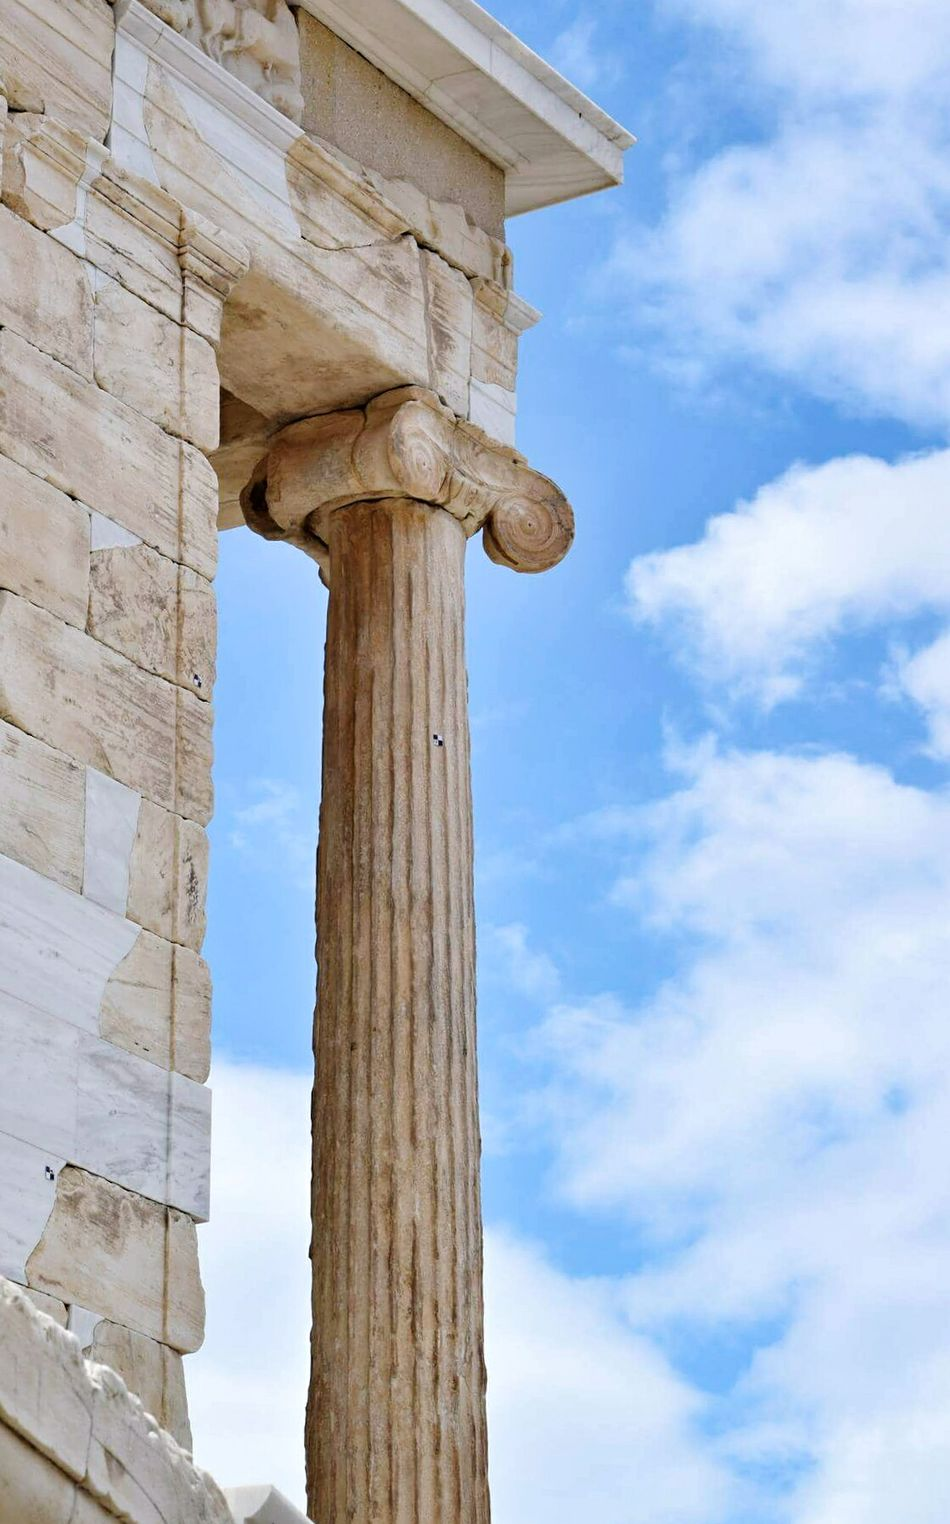 Athens,Greece. Architectural Column Old Ruin History Outdoors Sky Blue Architecture Cloud - Sky Close-up EyeEm Gallery Greece Eyeemphotography EyeEm Best Shots 3XSPUnity Photography EyeEmNewHere Travel Destinations Detailphotography Coloum Athens Greece Hellas No People Art Is Everywhere